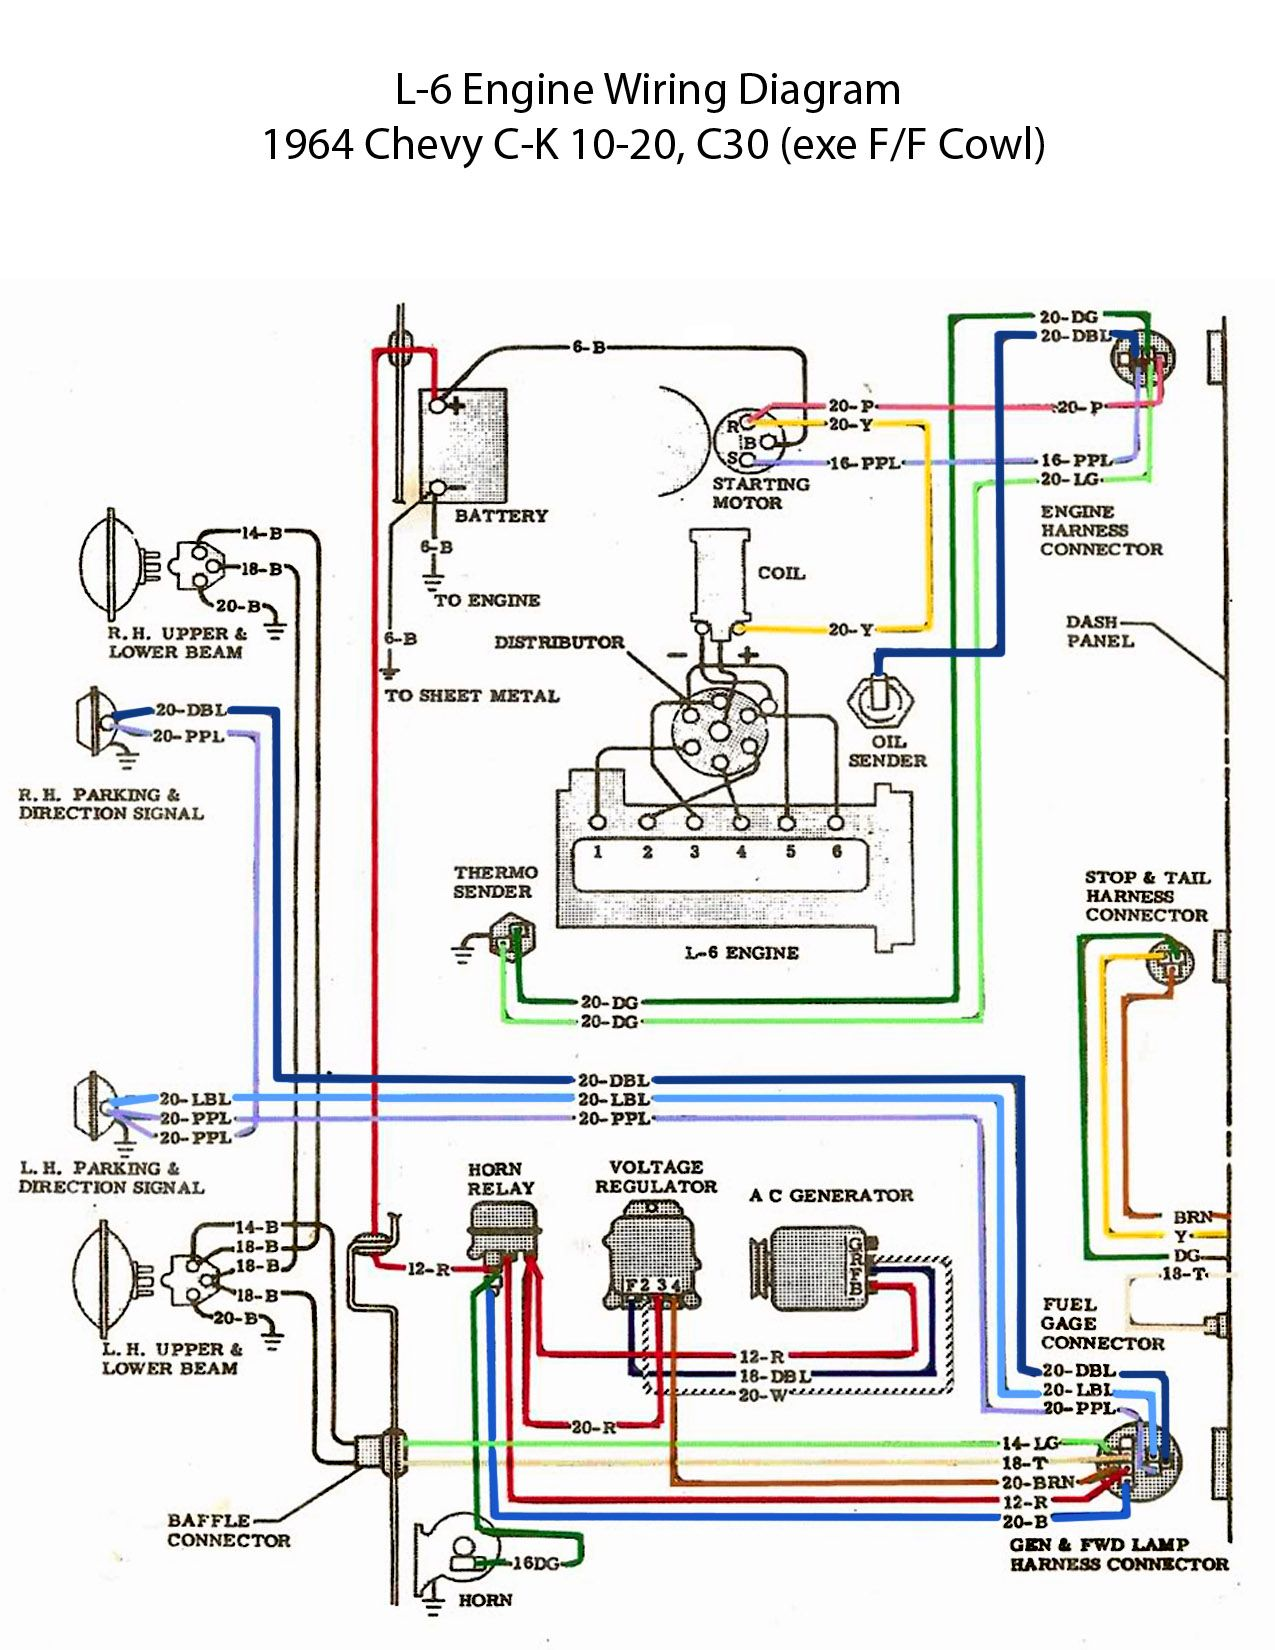 ELECTRIC: L-6 Engine Wiring Diagram | Chevy trucks, Chevy ... johnson outboard starter solenoid wiring diagram Pinterest